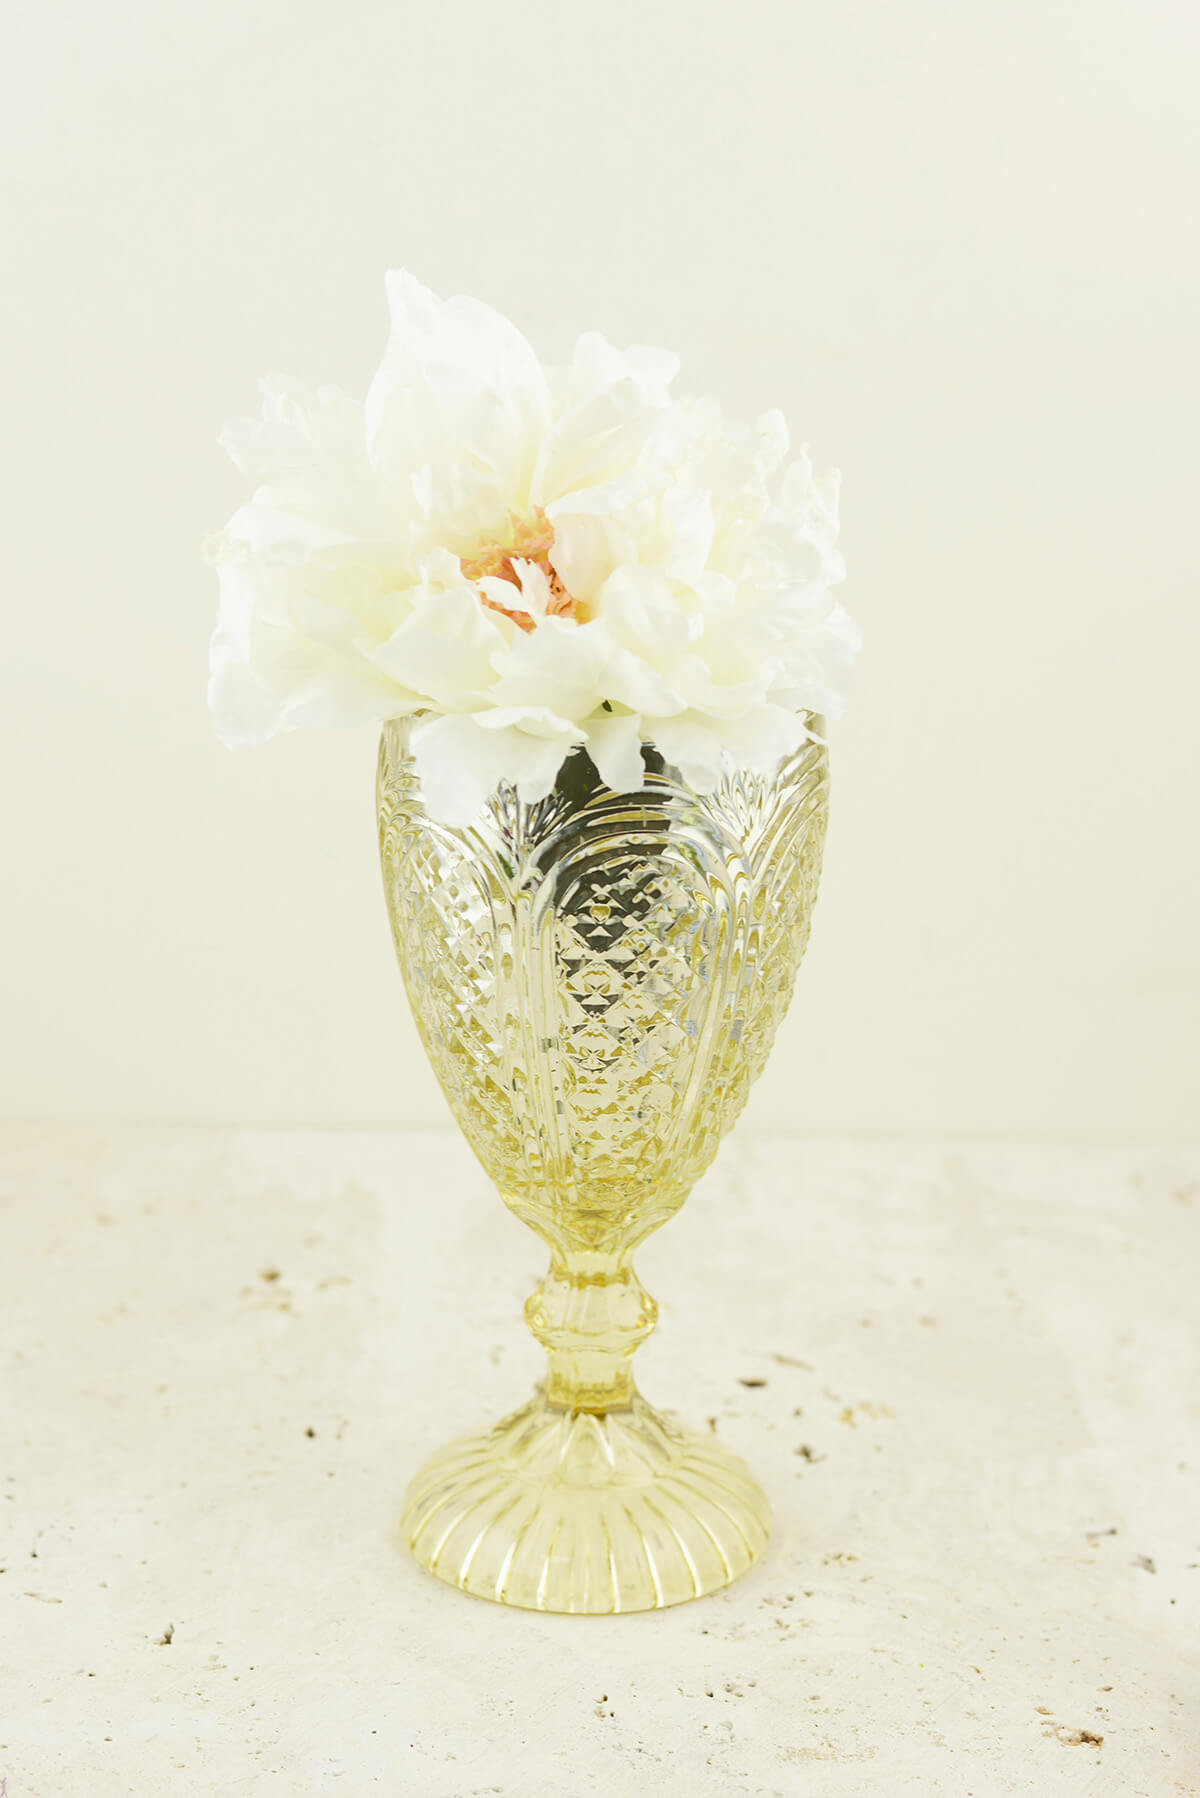 Discount vases containers bowls save on crafts kingston gold compote vase reviewsmspy